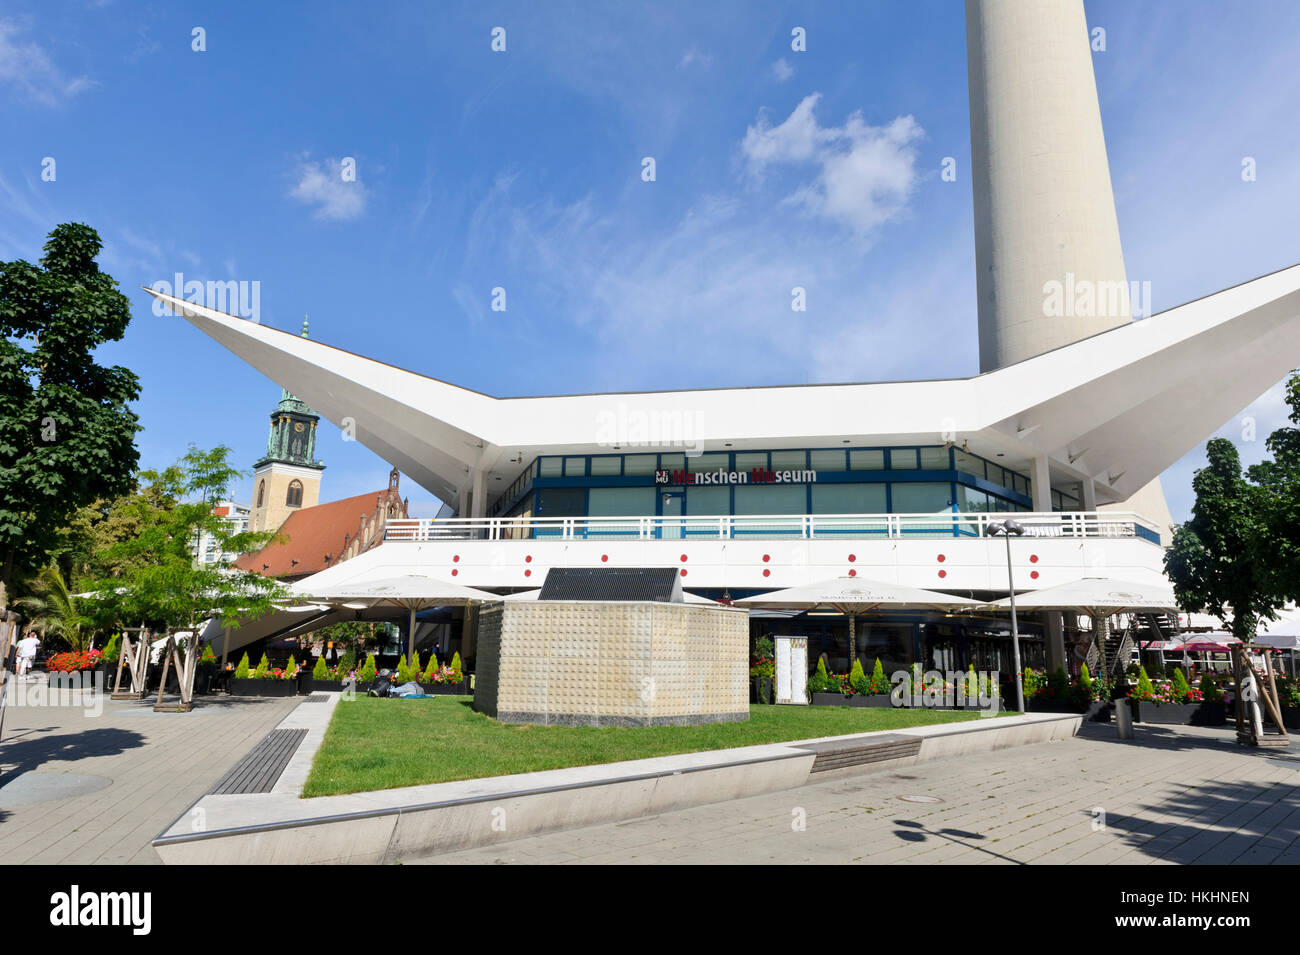 The Menschen museum near the Television Tower in Berlin, Germany. - Stock Image